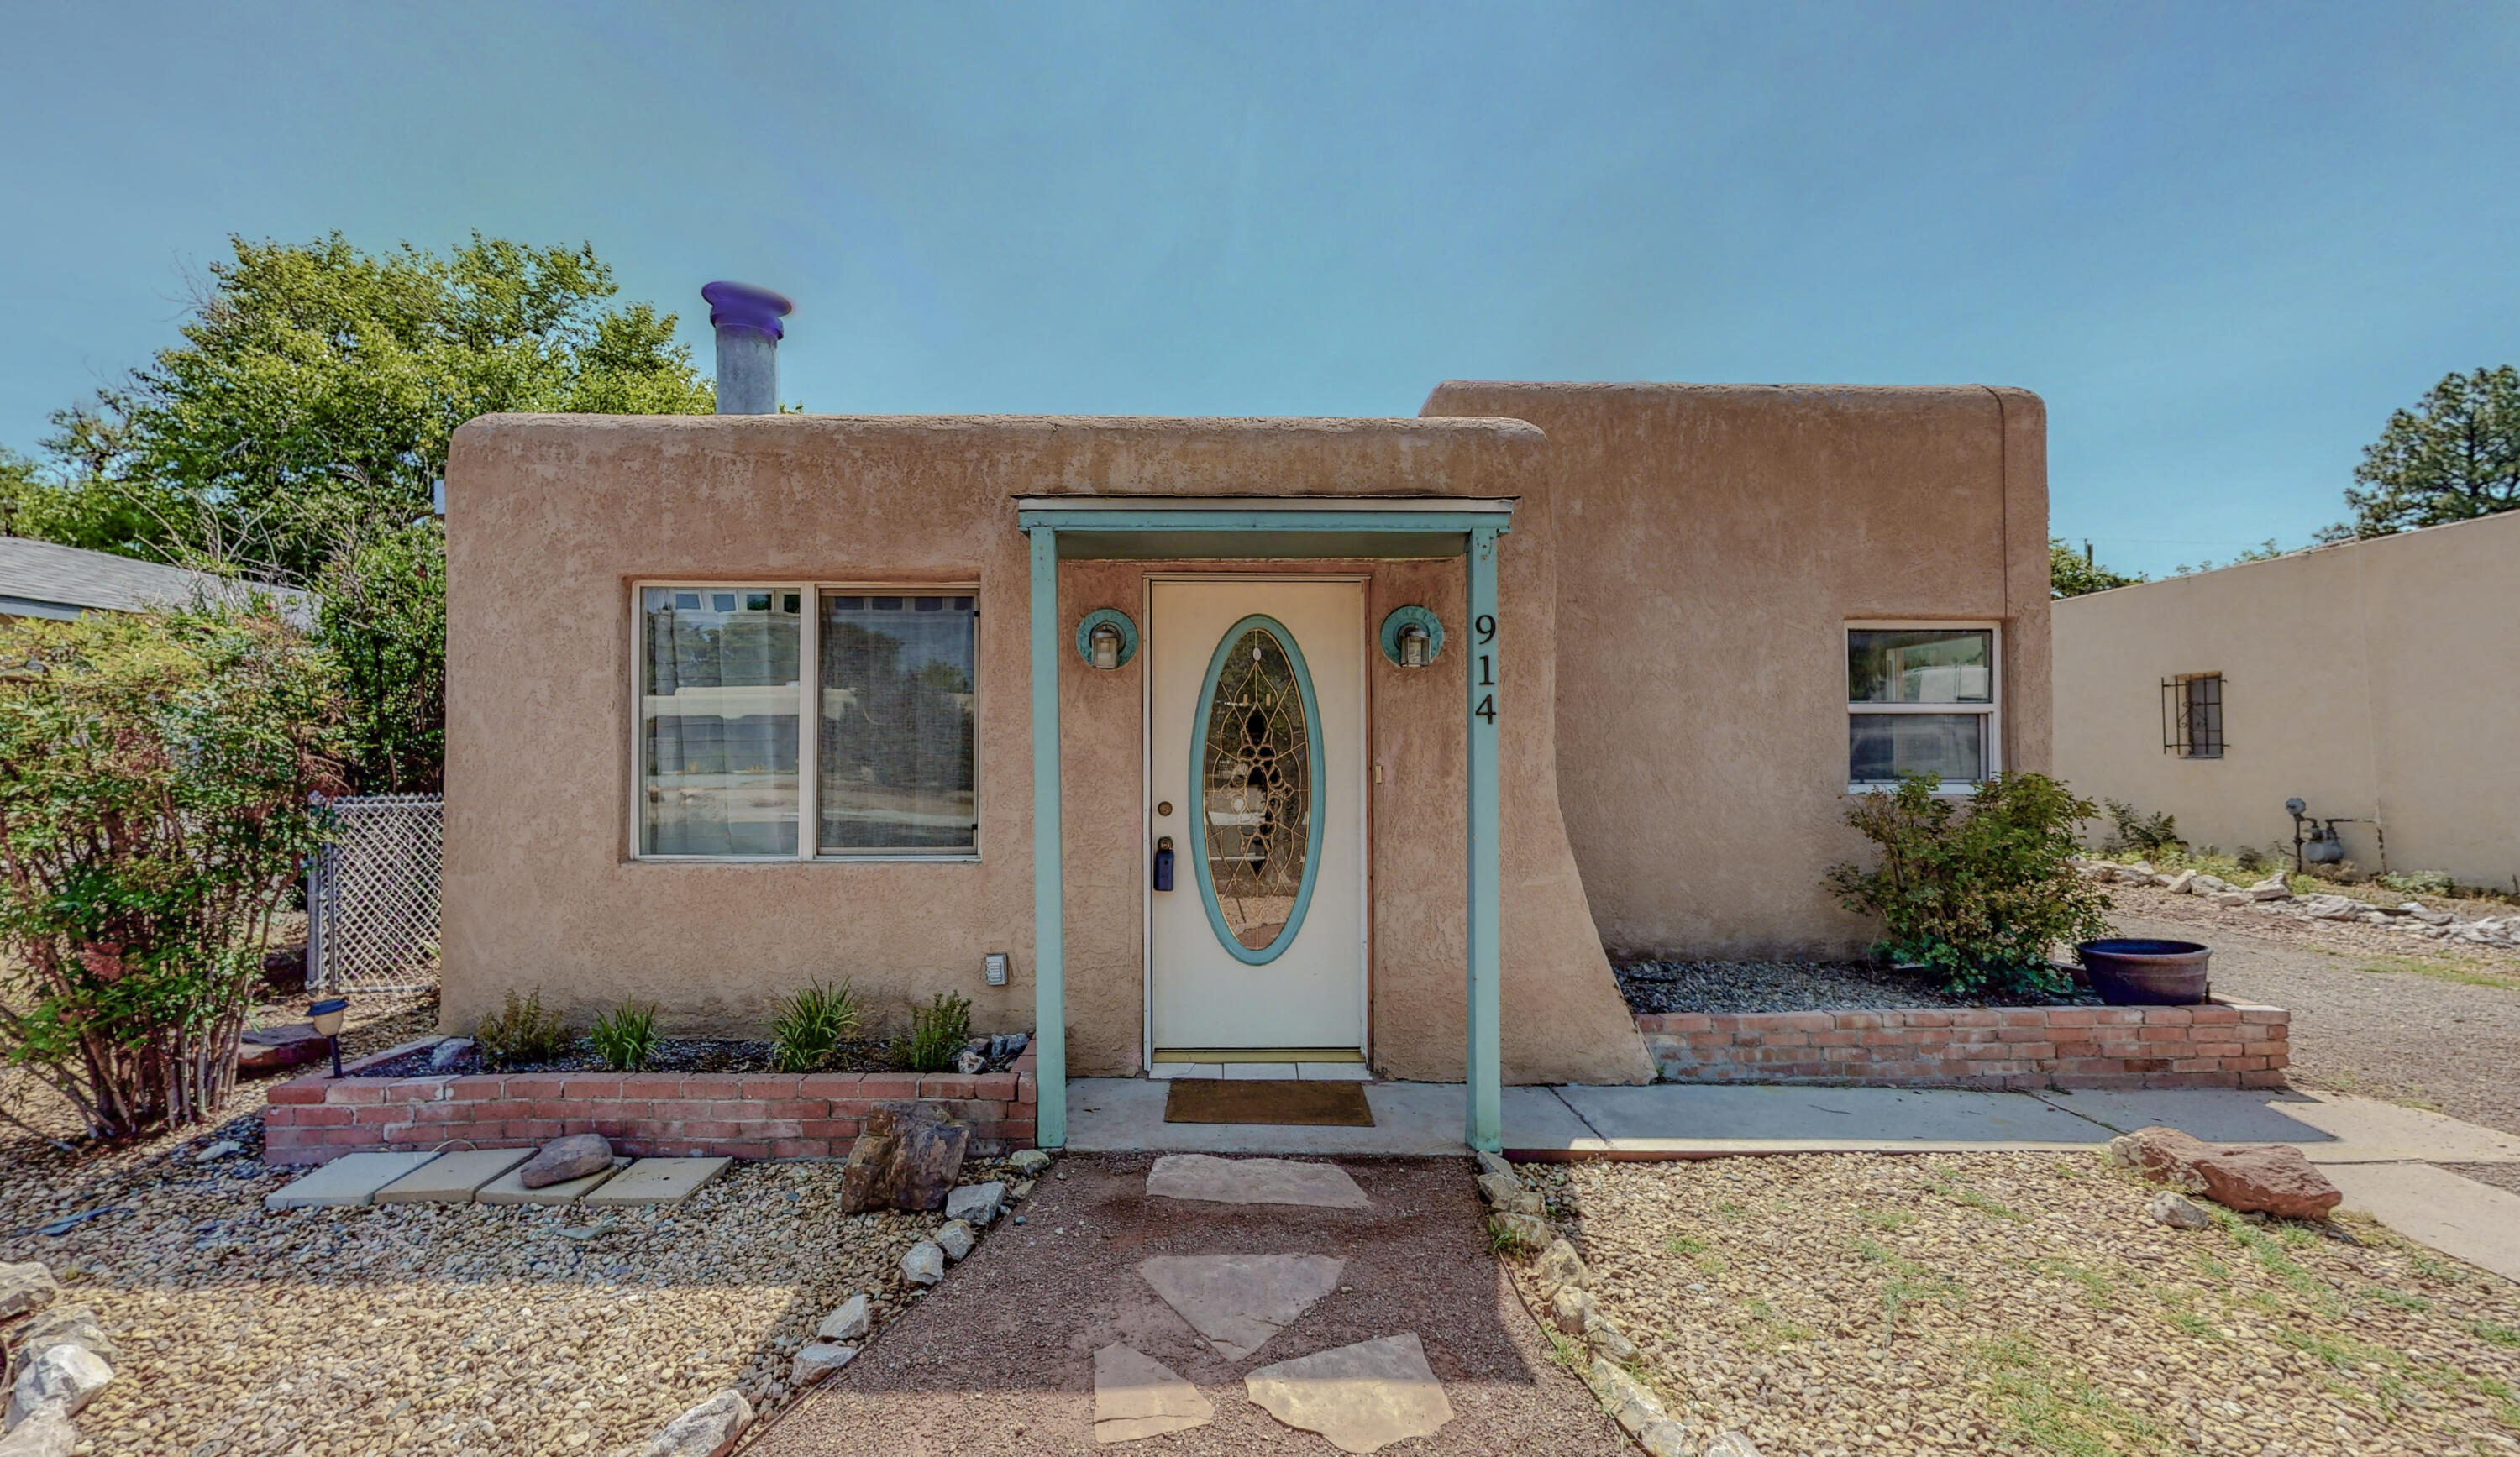 Charming three bedroom home in popular Ridgecrest Addition neighborhood is just what you're looking for!   New flooring added along with fresh paint!  This home includes a beautiful remodeled  bathroom done in 2020.  Complete with generously sized laundry/utility room.  Real wood burning stove for those chilly winter nights. Third bedroom has a separate entrance along with entrance into main home, could also be used as office if needed. Arched entry into dining area.  The property has a large backyard ready for anything!  The neighborhood is well established and the home is conveniently located near KAFB, the VA hospital and Nob Hill.  New roof in 2019.  All appliances stay, including washer and dryer.  This stunning home is light, bright, airy and move-in ready!